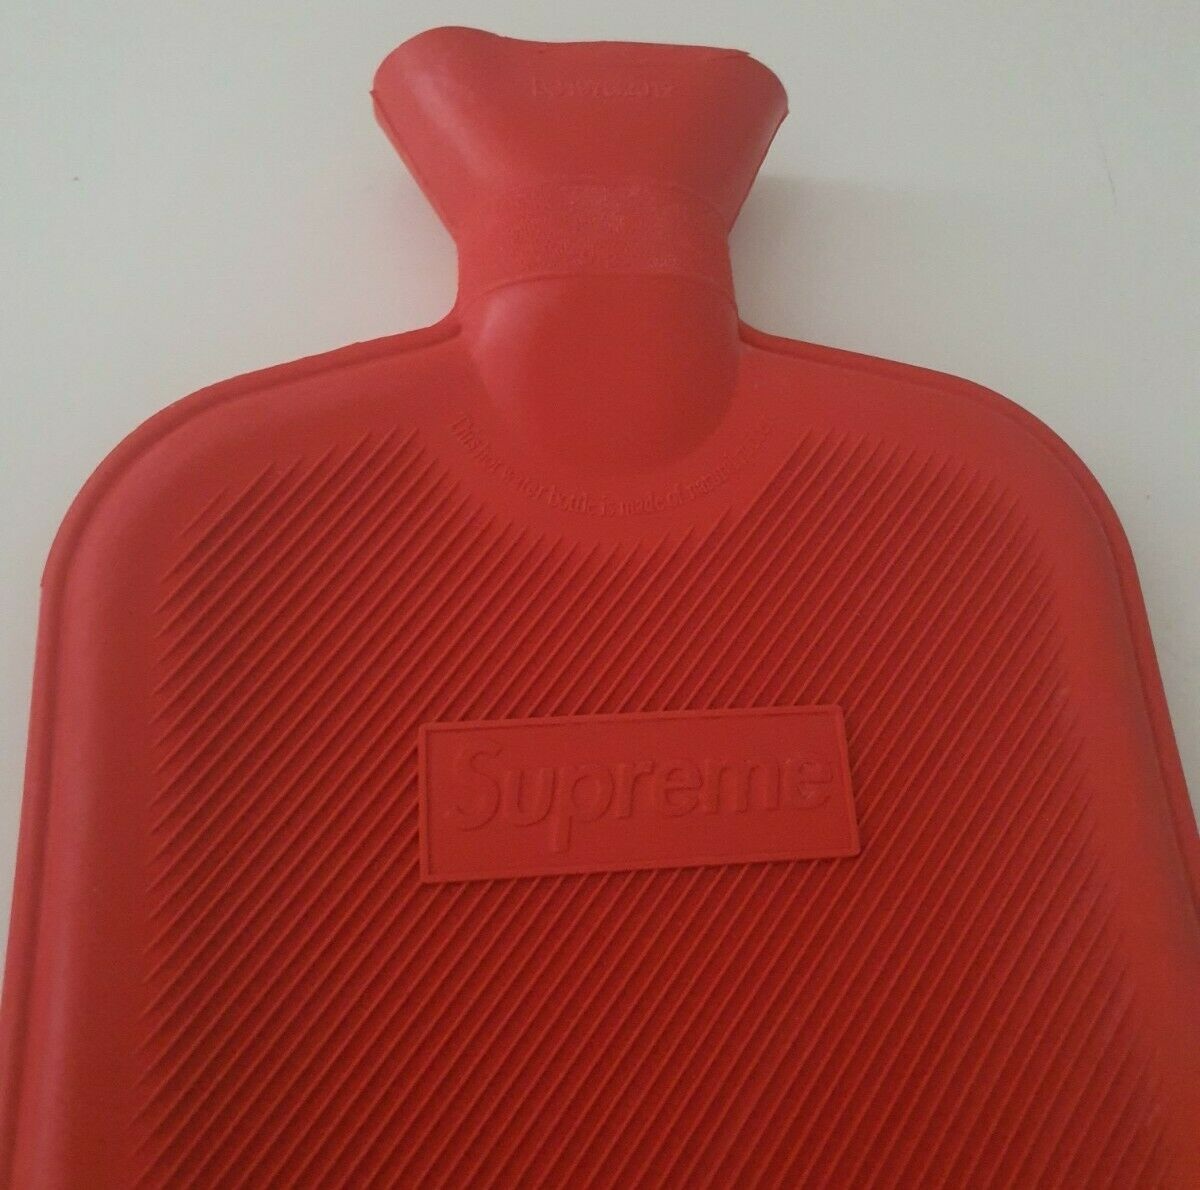 FW16 Supreme hot water bottle red